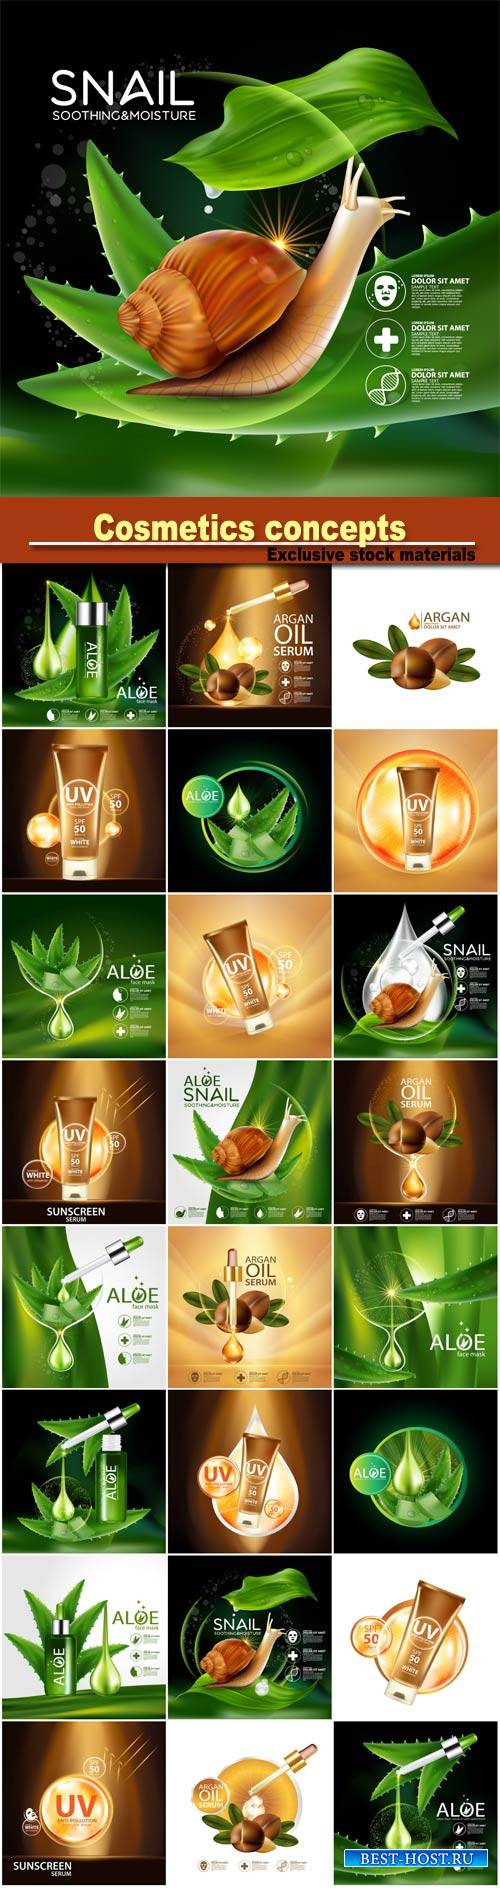 Cosmetics concepts, argan oil serum, aloe snail soothing and moisture